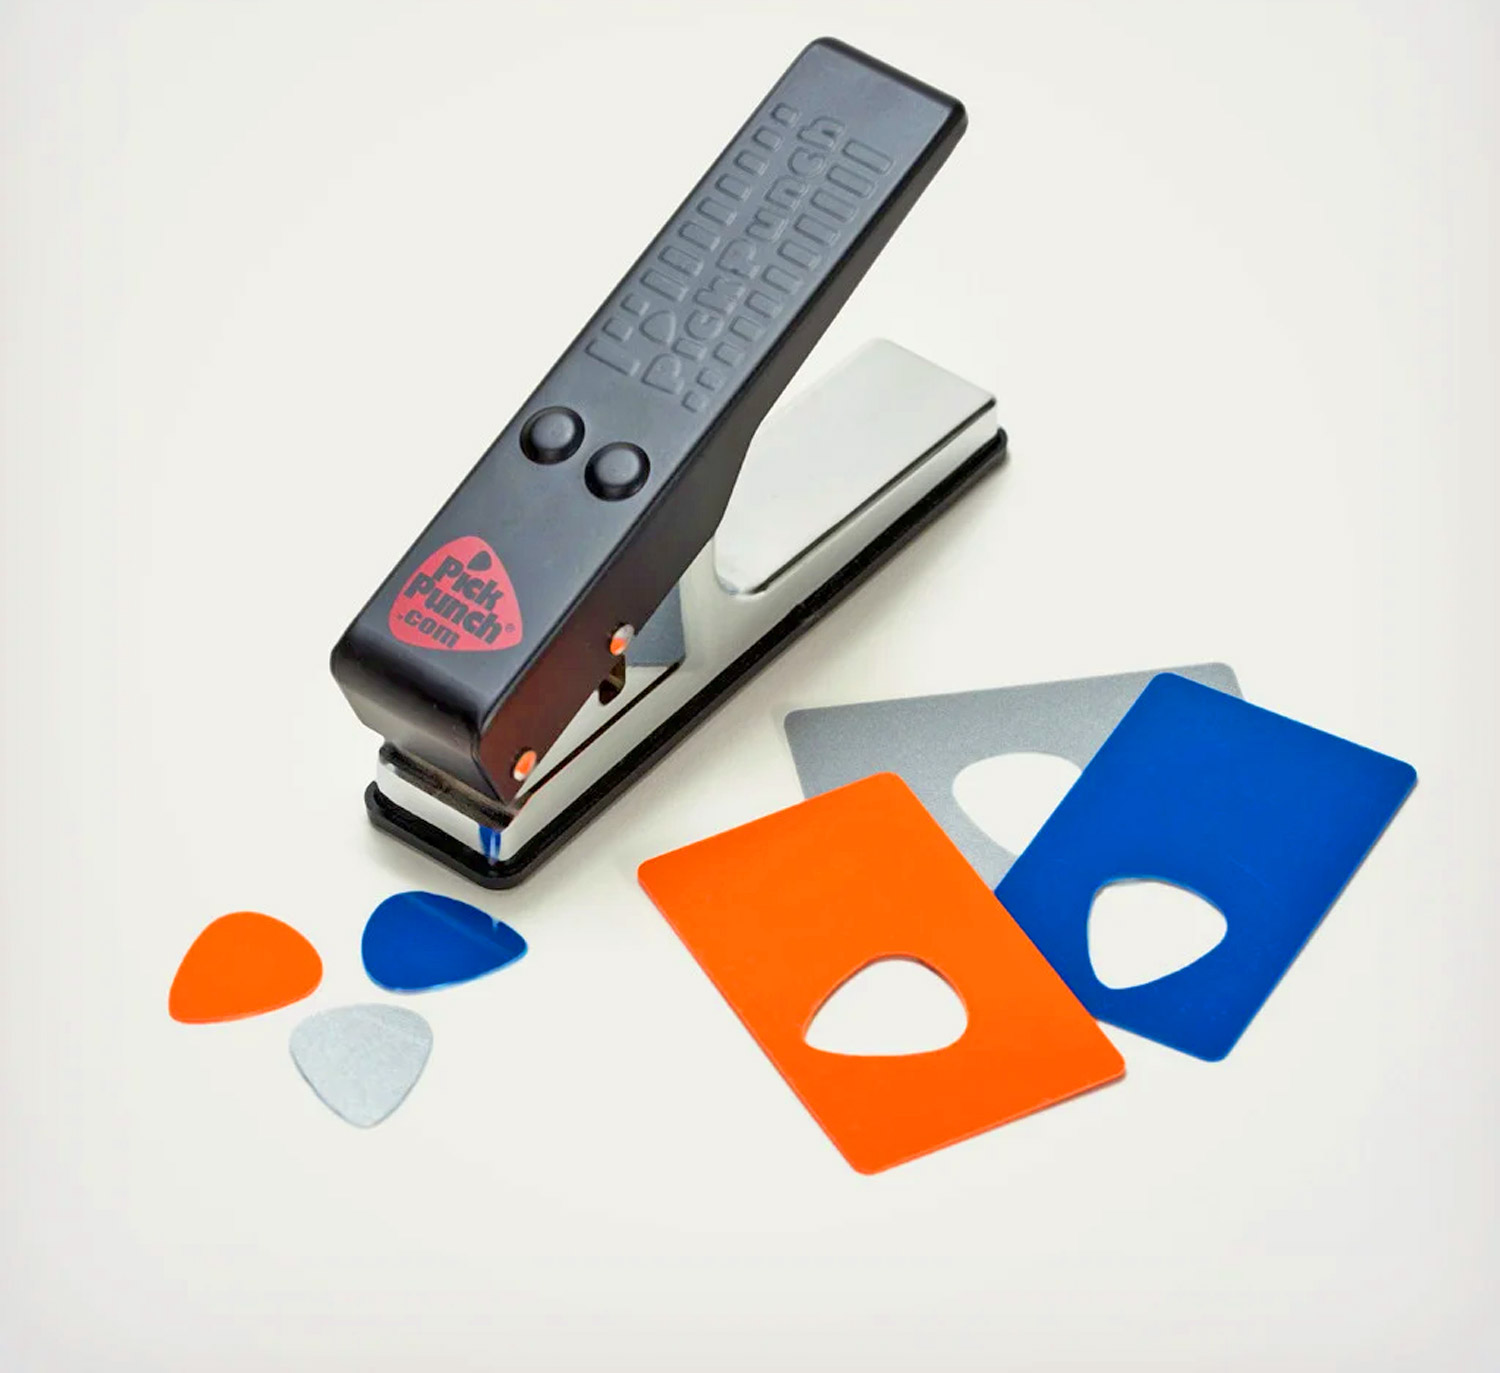 This Guitar Pick Punch Makes Guitar Picks From Old Credit Cards Ids And Hotel Keys